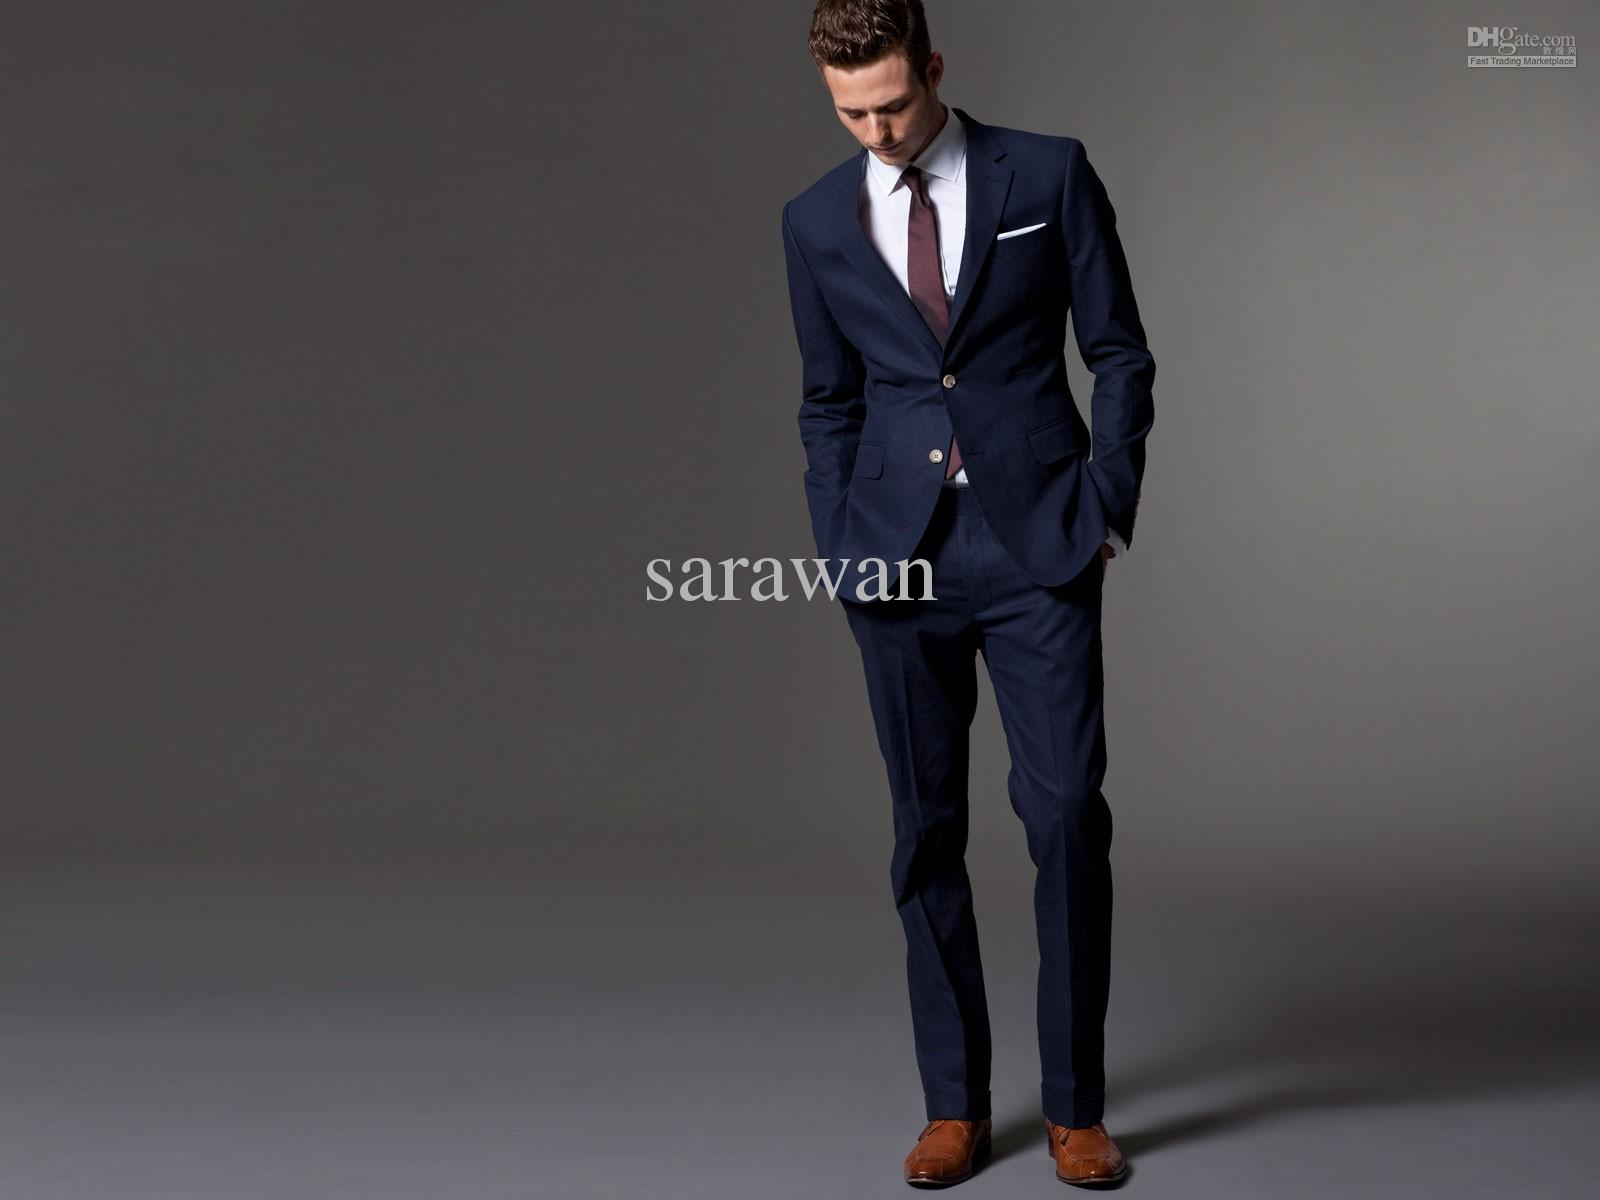 HTB1FQwQGXXXXXa6XpXXq6xXFXXXD Men Suit Men Tuxedo Custom Made Wedding Suits For Men 2018 Tailored Light Navy Blue Mens Suits With Pants Costume Homme Mariage